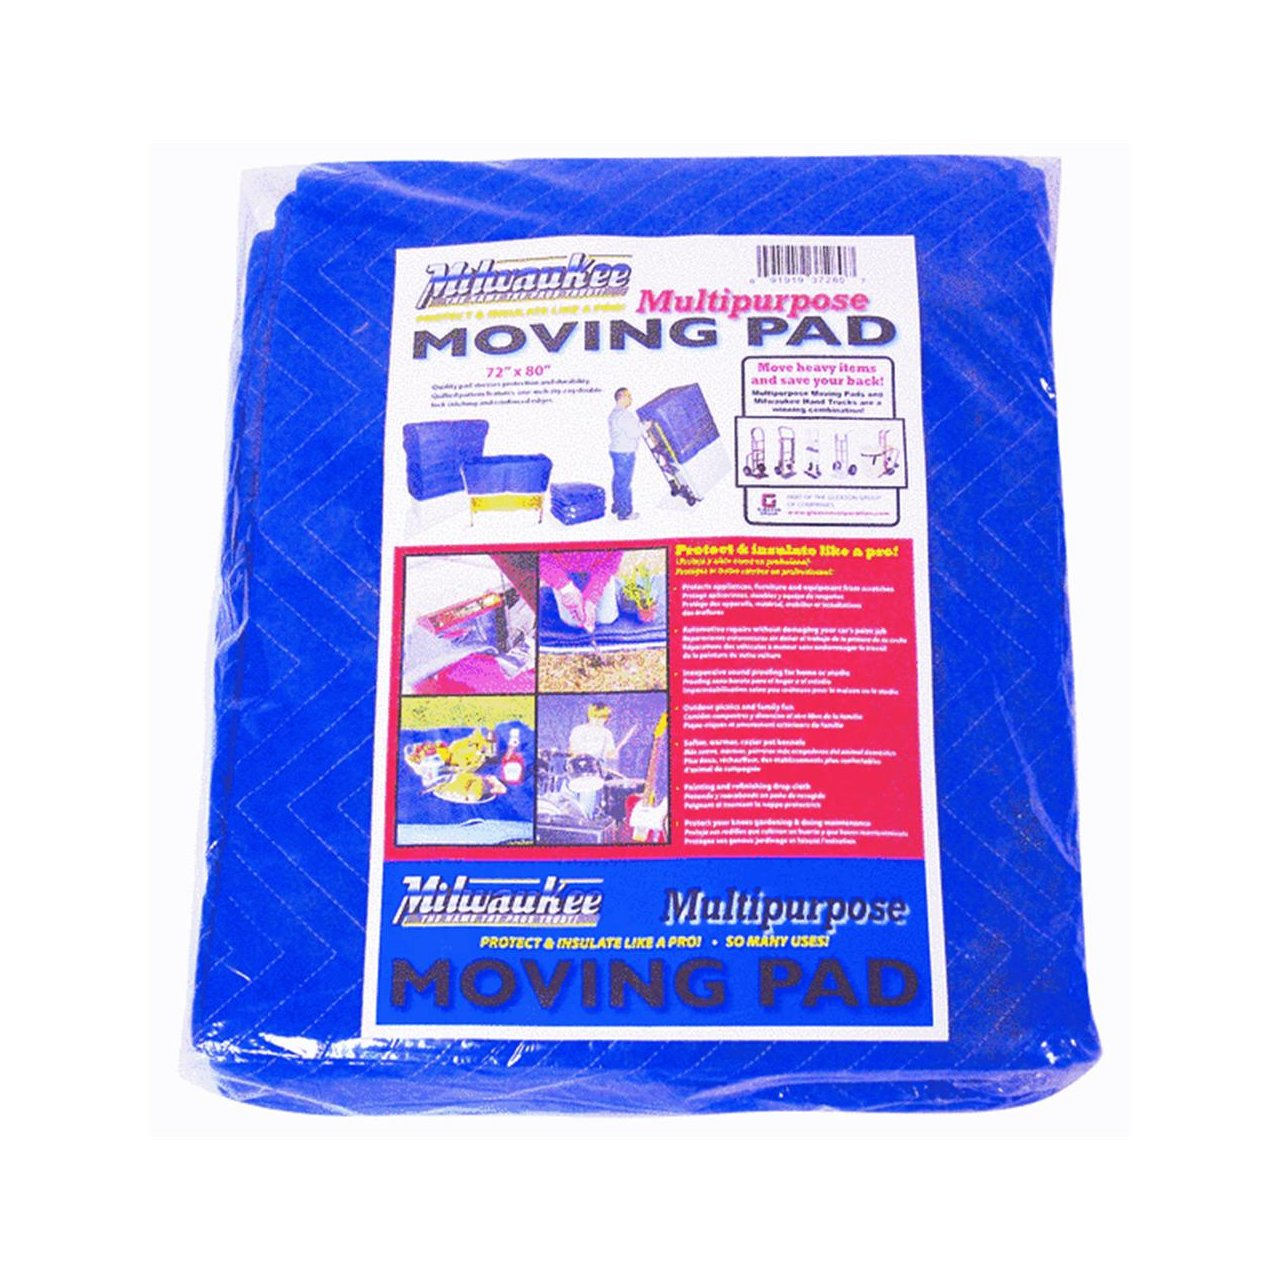 milwaukee hand trucks 37280 72 inch by 80 inch moving pads